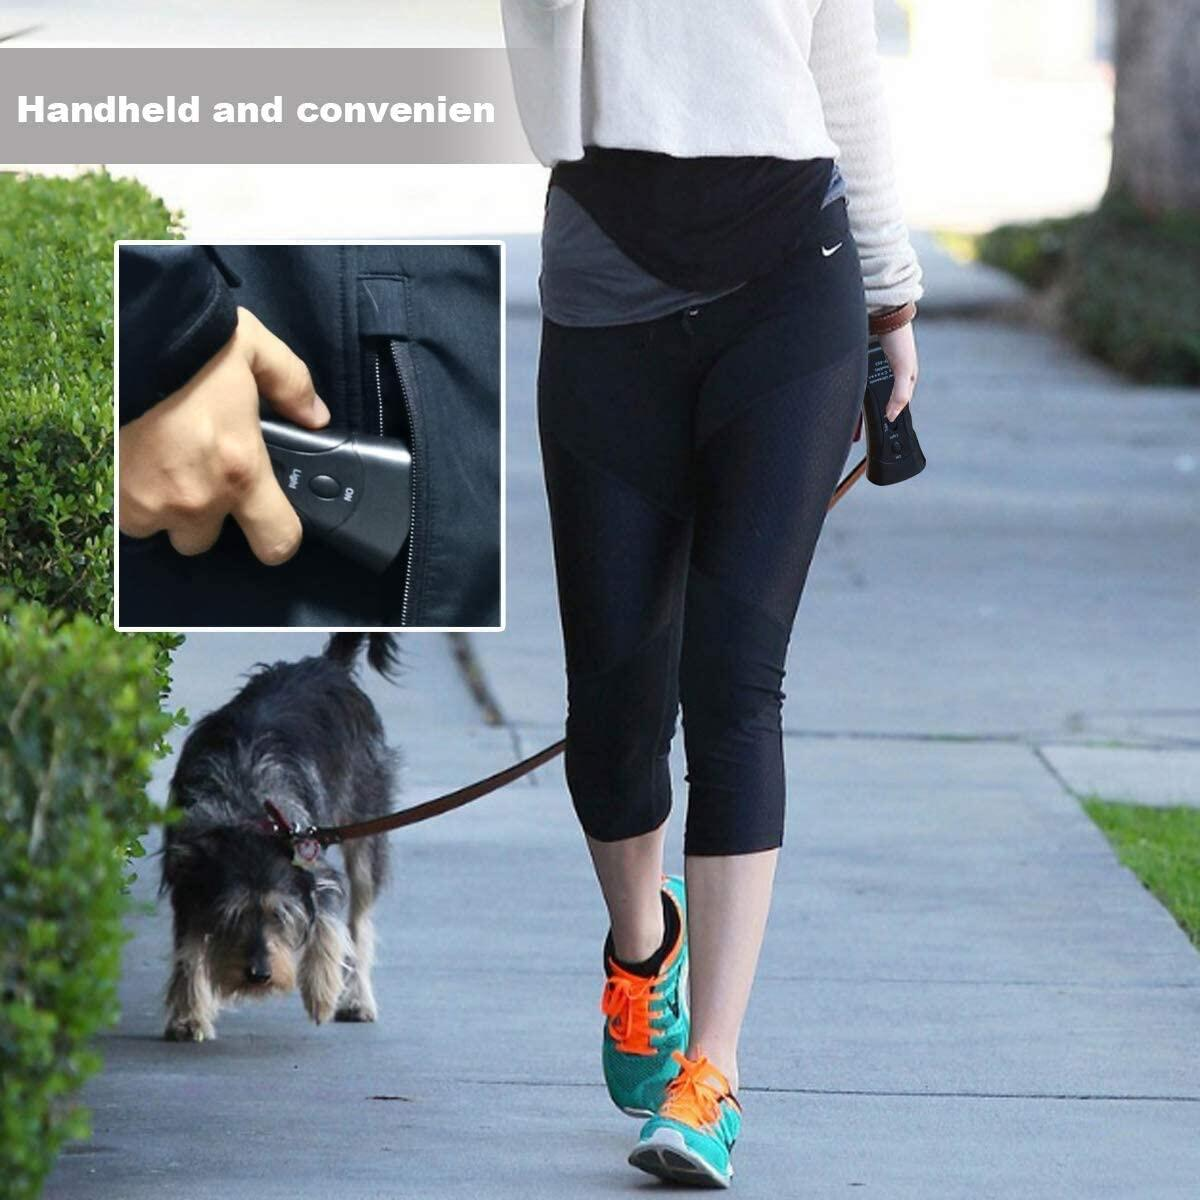 ZIMRIT Anti Barking Device - Ultrasonic Dog Bark Deterrent Training Multi-Functions Pet Anti-Barking Silent Commands Distracts Attention Calm Handheld Audible Repellent Safe to Use Indoor & Outdoor